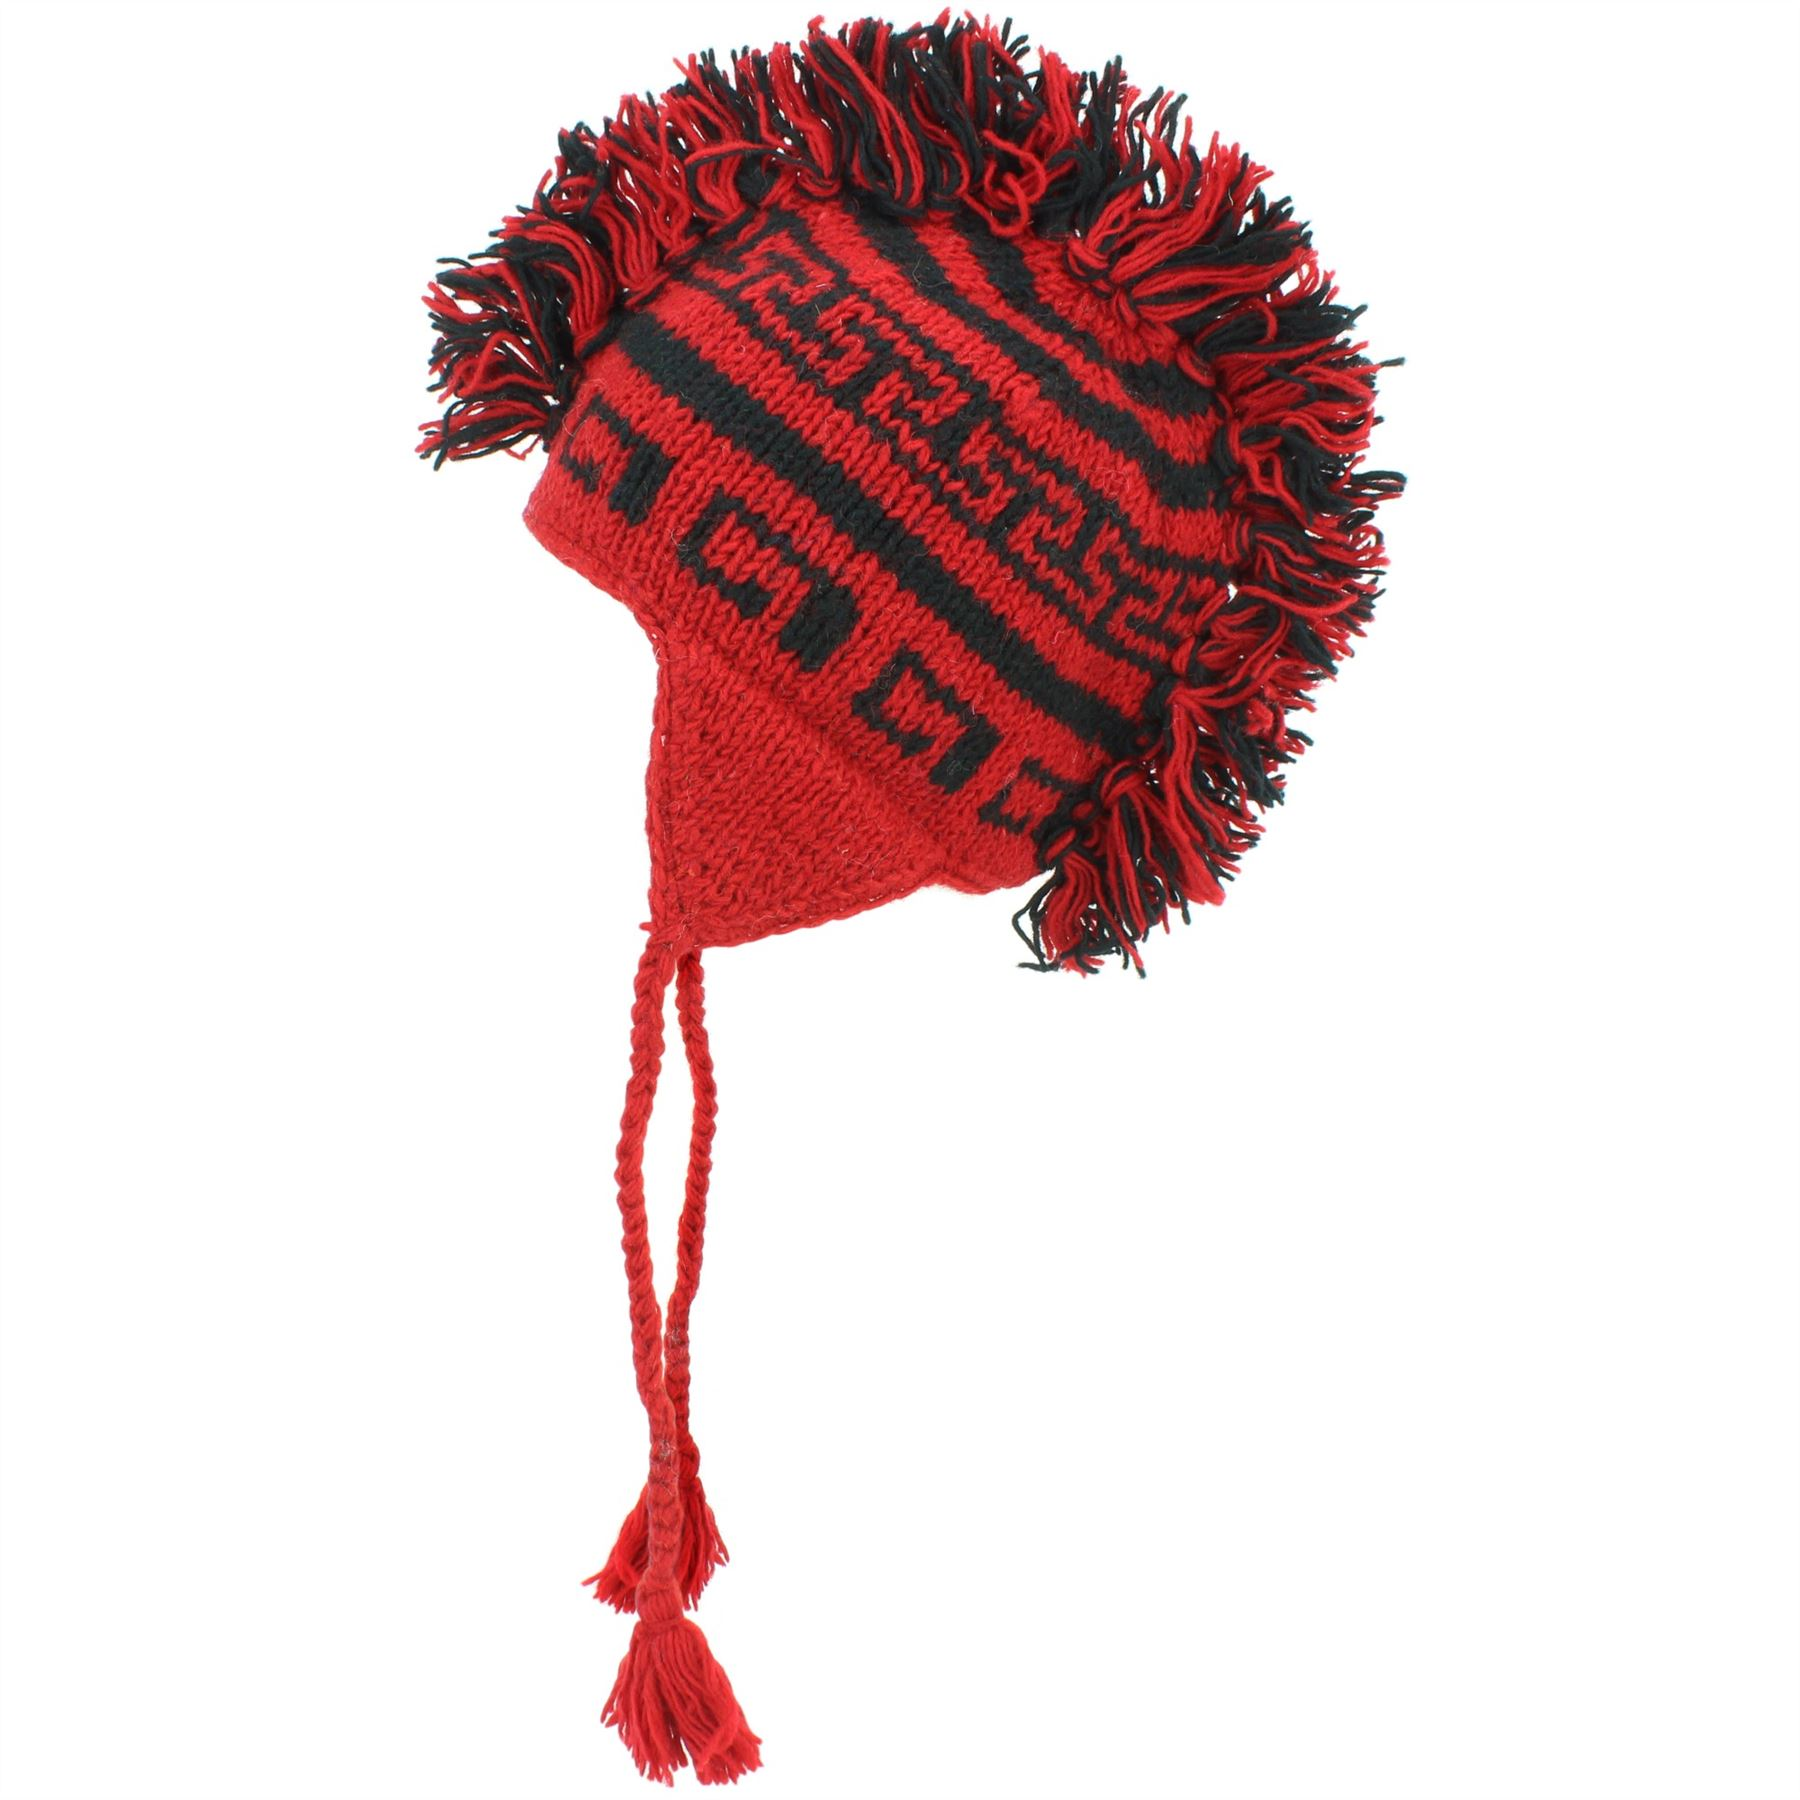 008b4fd7564 LoudElephant Wool Knit  Punk  Mohawk Earflap Beanie Hat - Red   Black. Hand knitted  wool beanie hat with ...